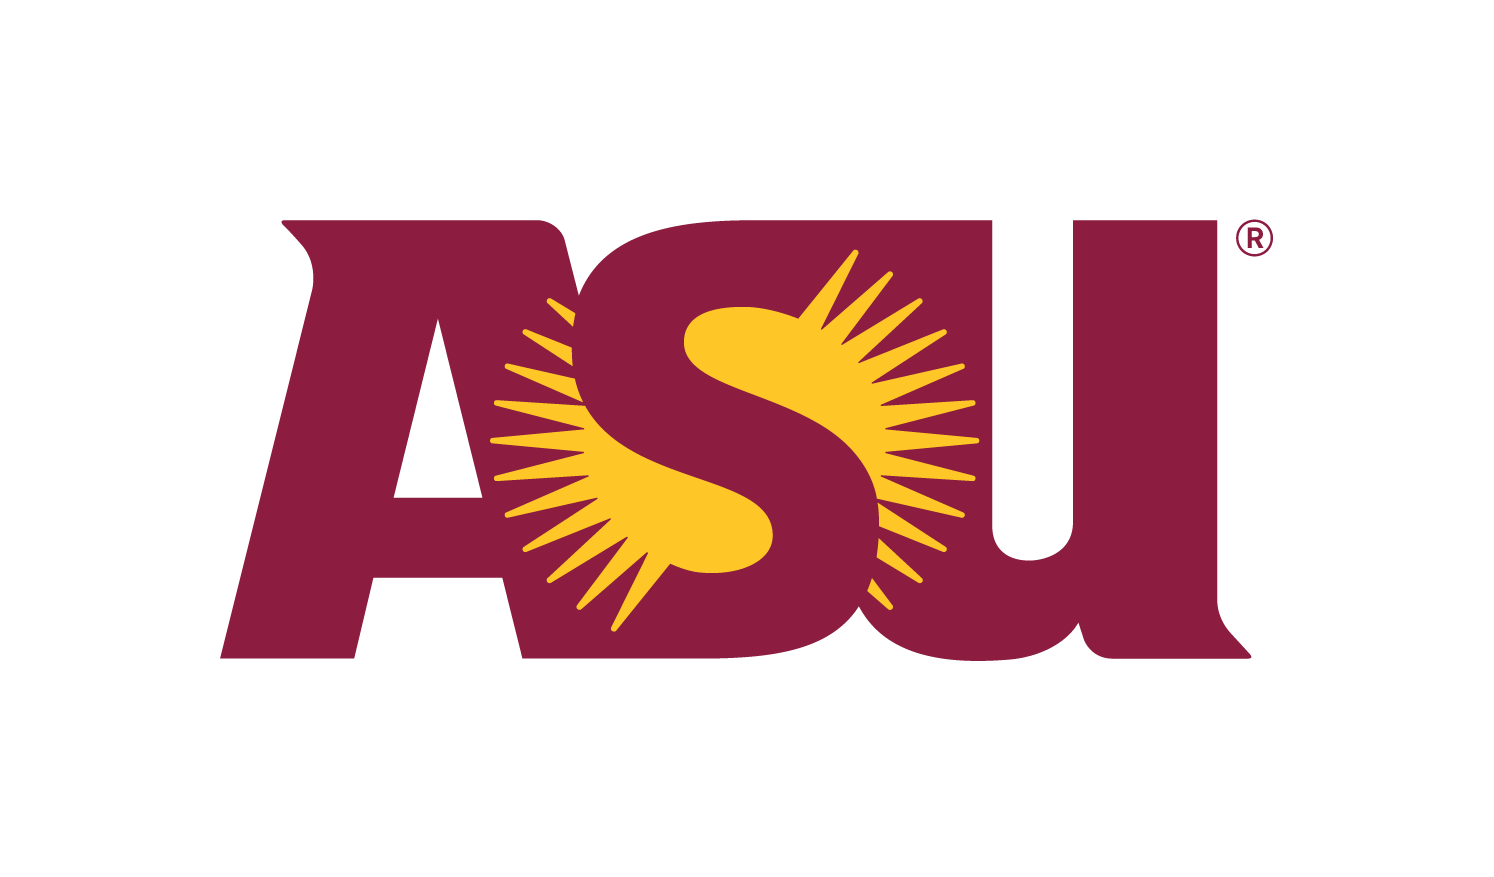 Asu sun devil clipart picture freeuse library MEDIA ADVISORY: ASU Open Door 2018 | ASU Now: Access, Excellence, Impact picture freeuse library